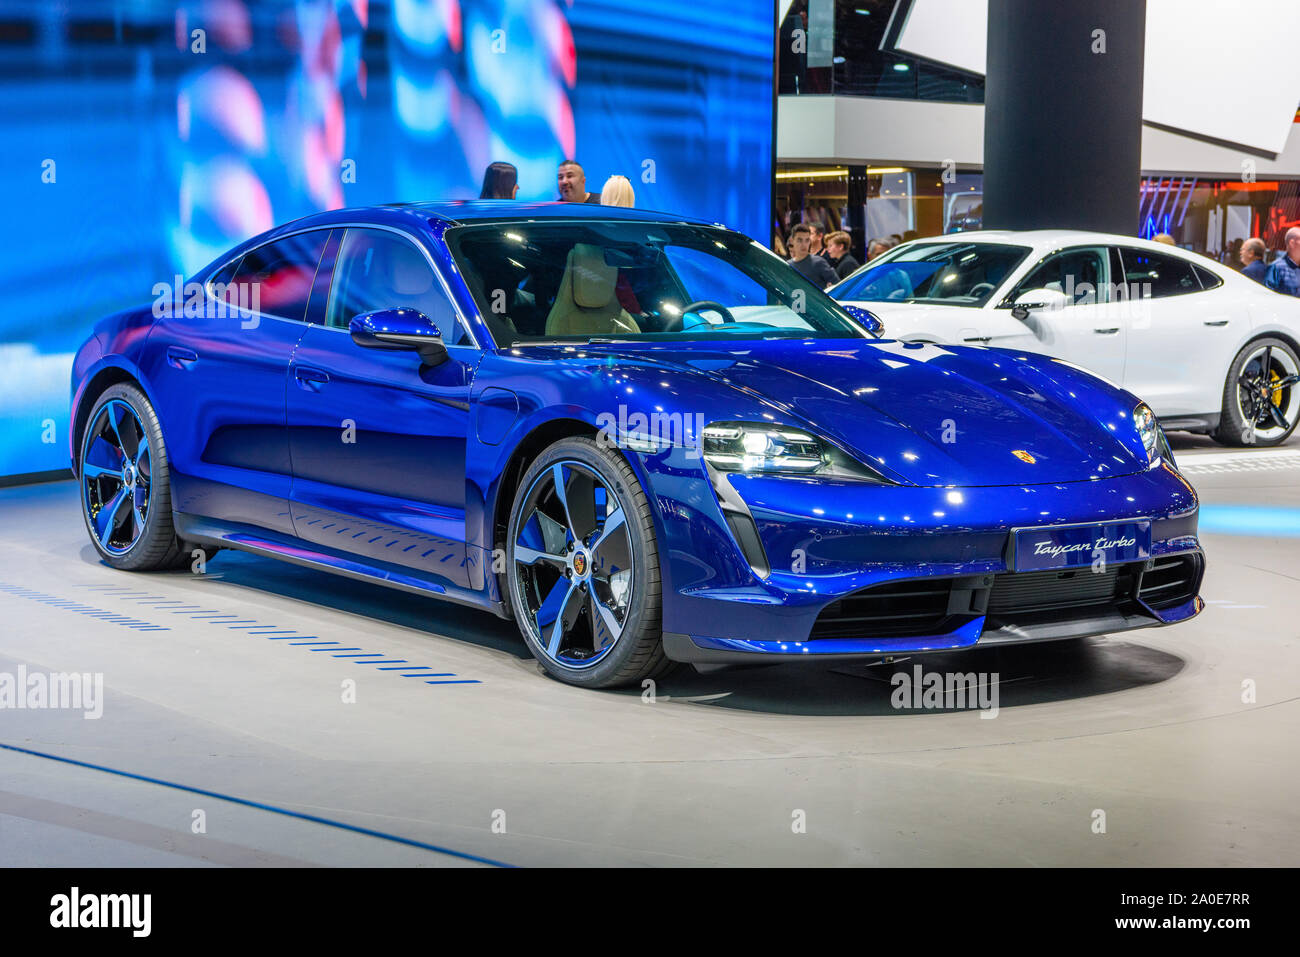 Frankfurt Germany Sept 2019 Blue Porsche Taycan Turbo S Is An All Electric 4 Door Coupe Was First Unveiled As A Concept Car Named Mission E Iaa I Stock Photo Alamy